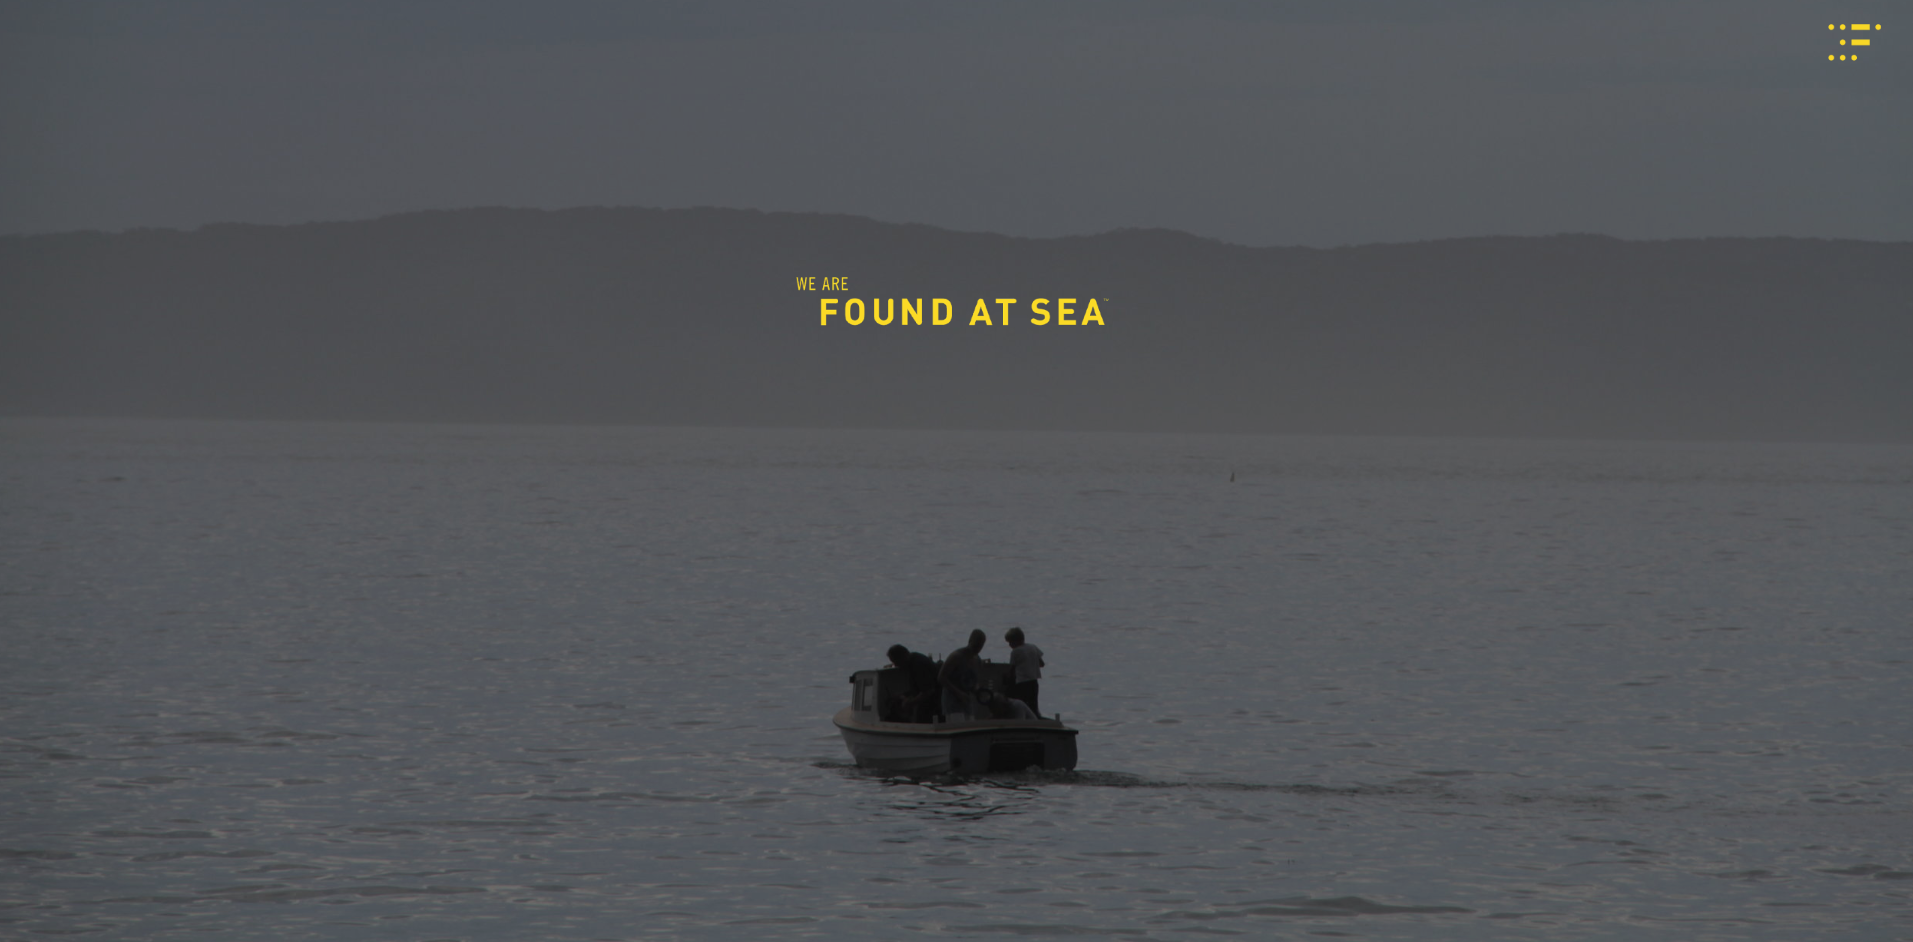 Who the FAS is Found At Sea?